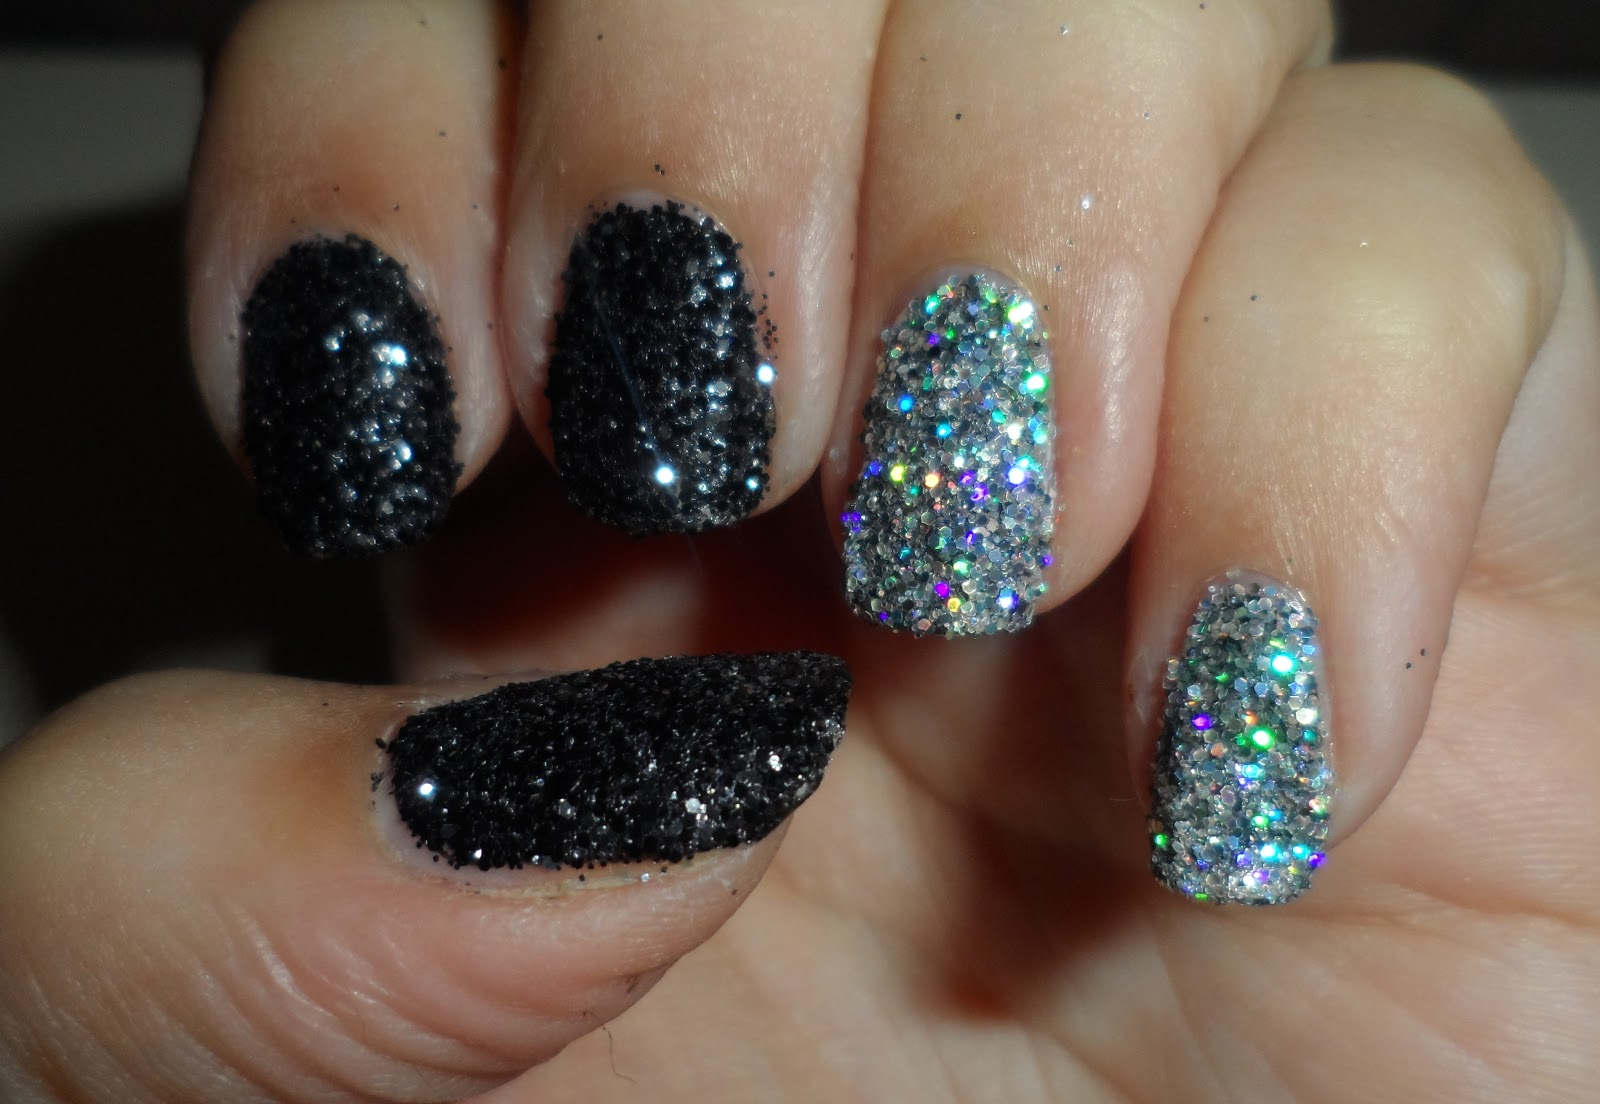 notd: nails inc bling it on rocks extreme sparkly glitters